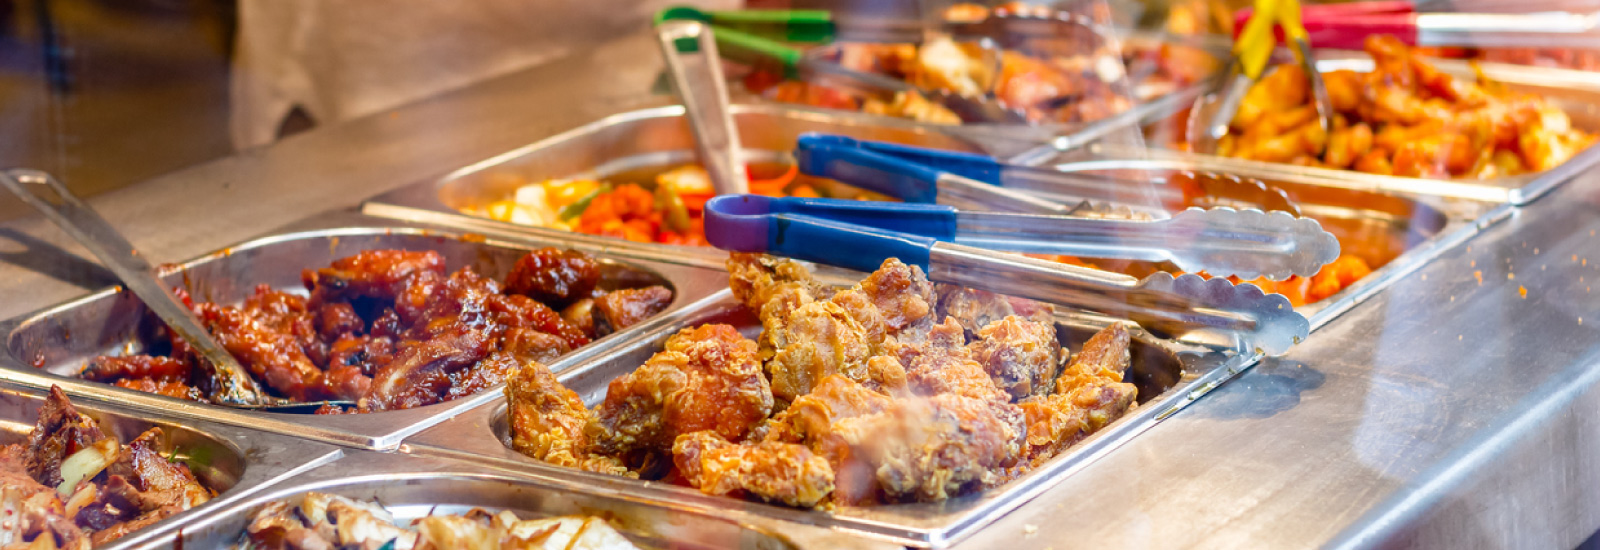 Sheppard AFB Dining Facilities